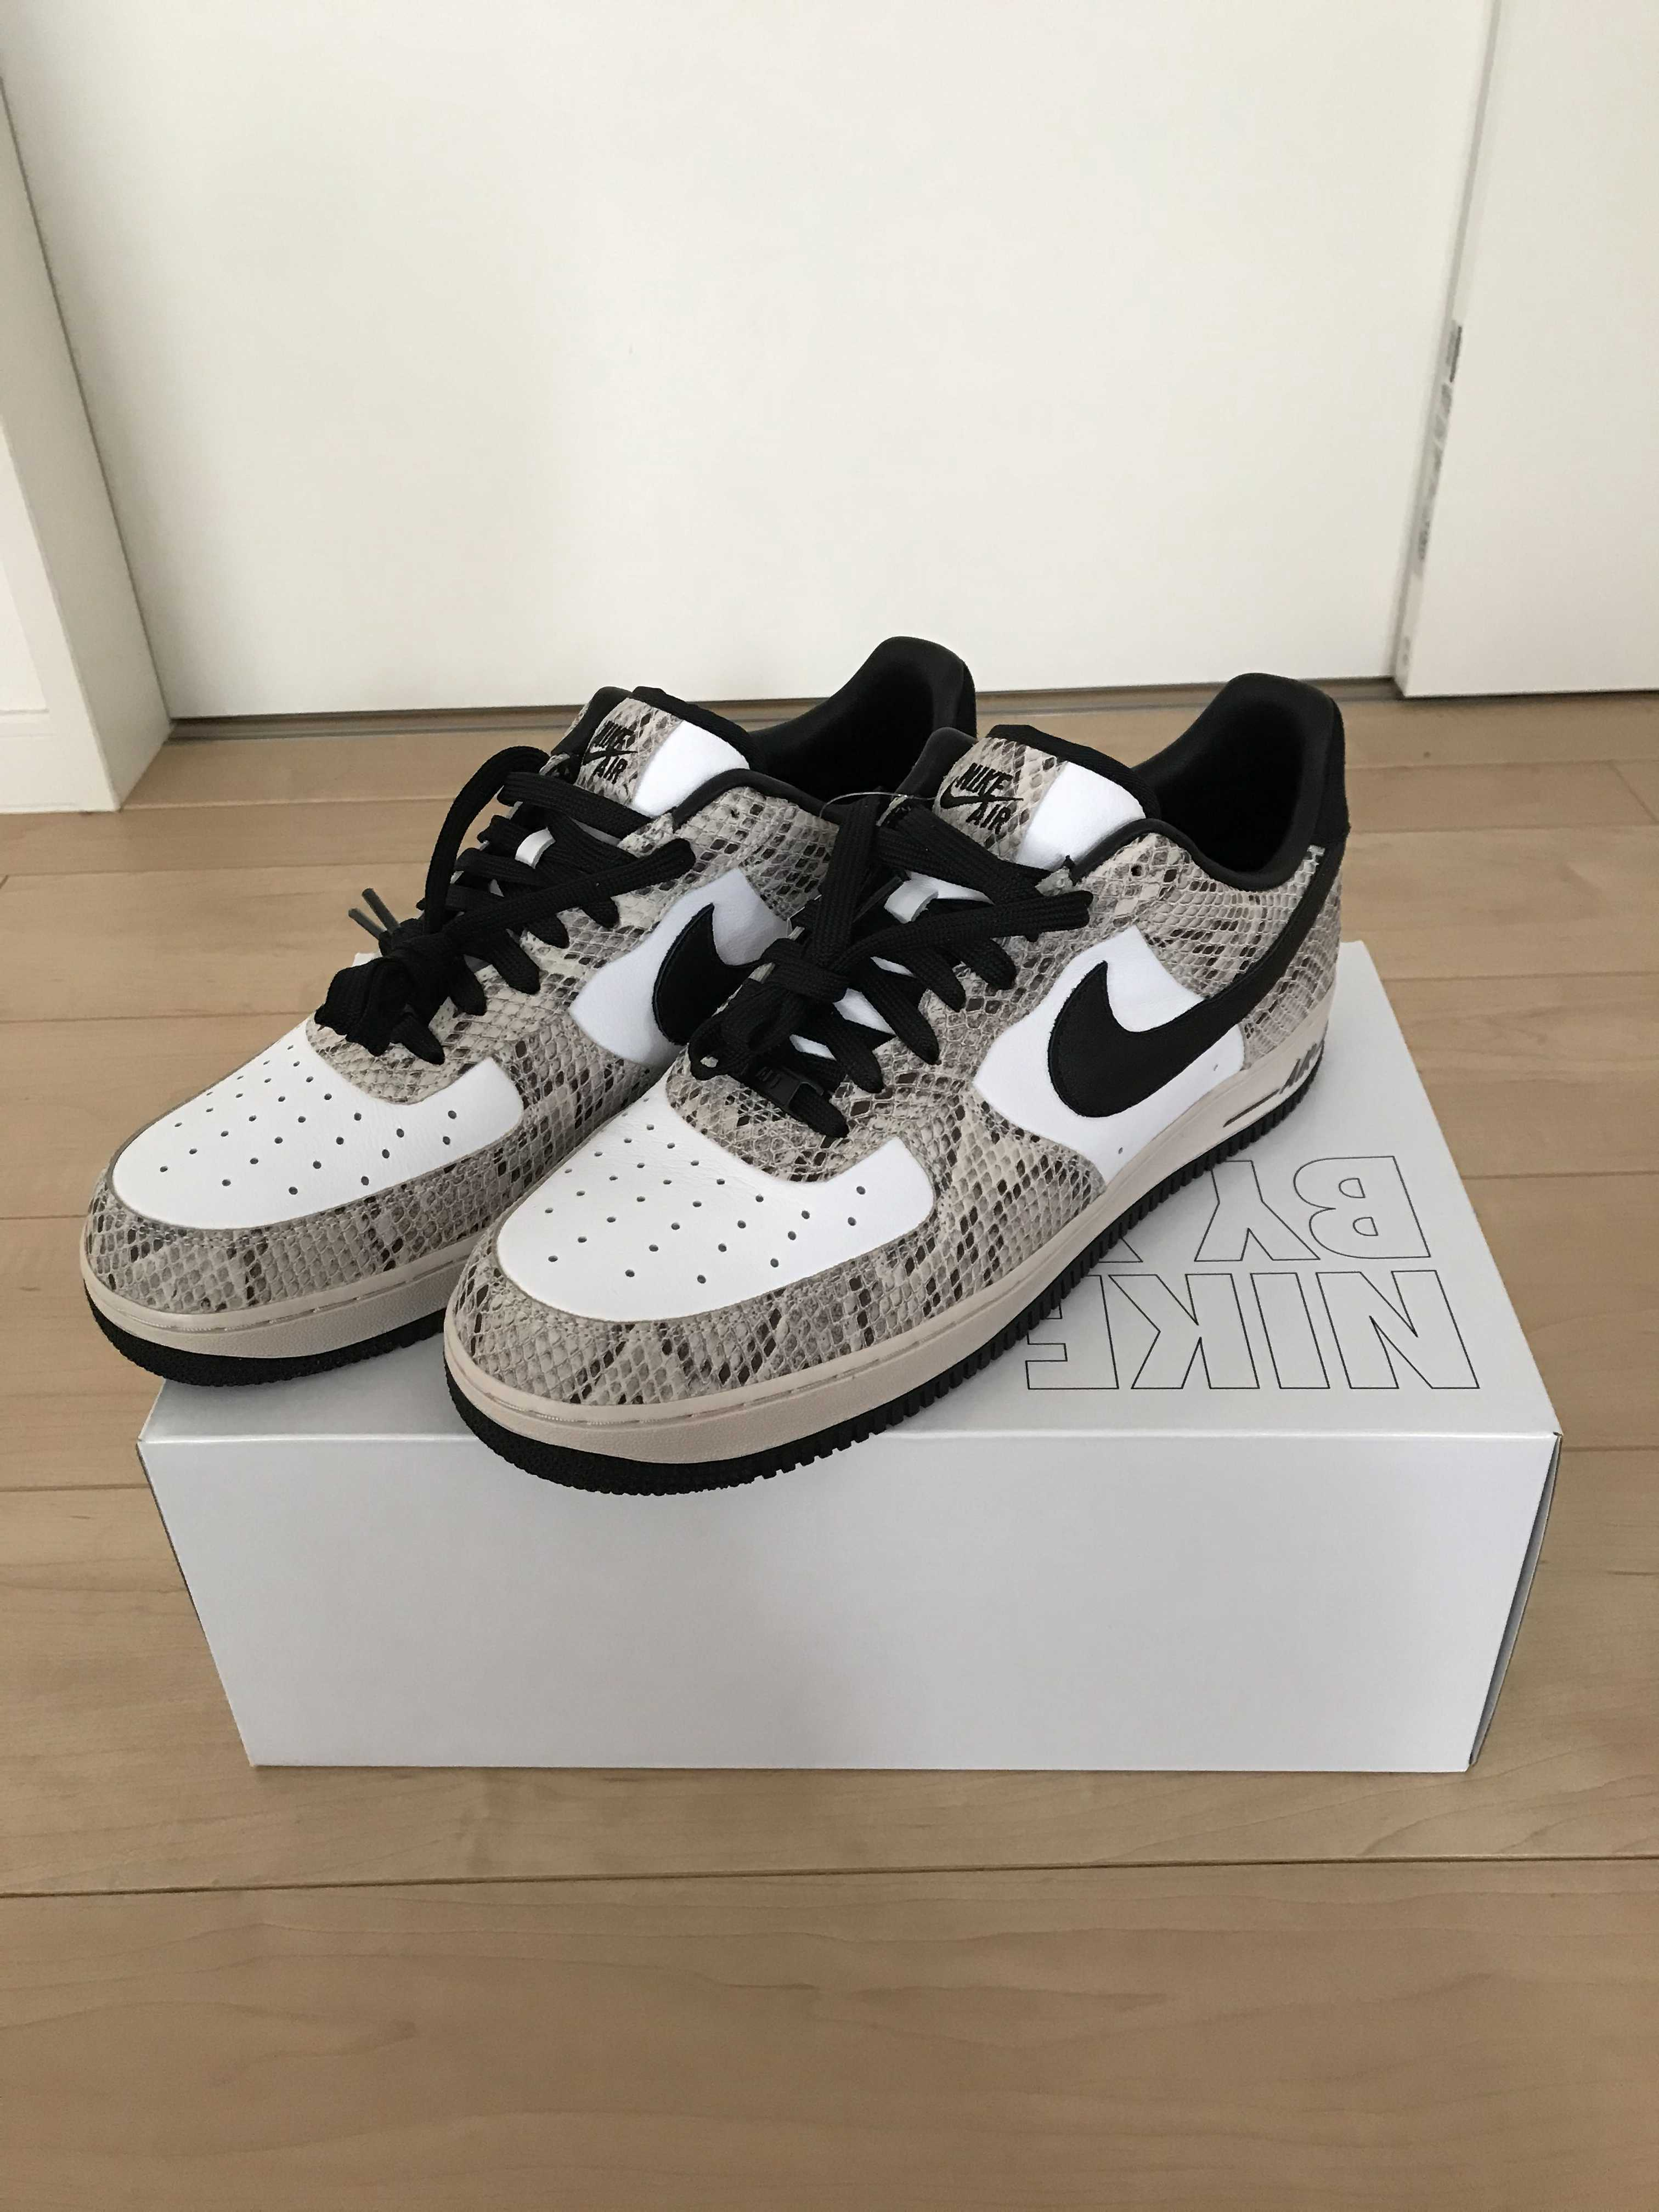 NIKE エアフォース1 BY YOU アンロックド